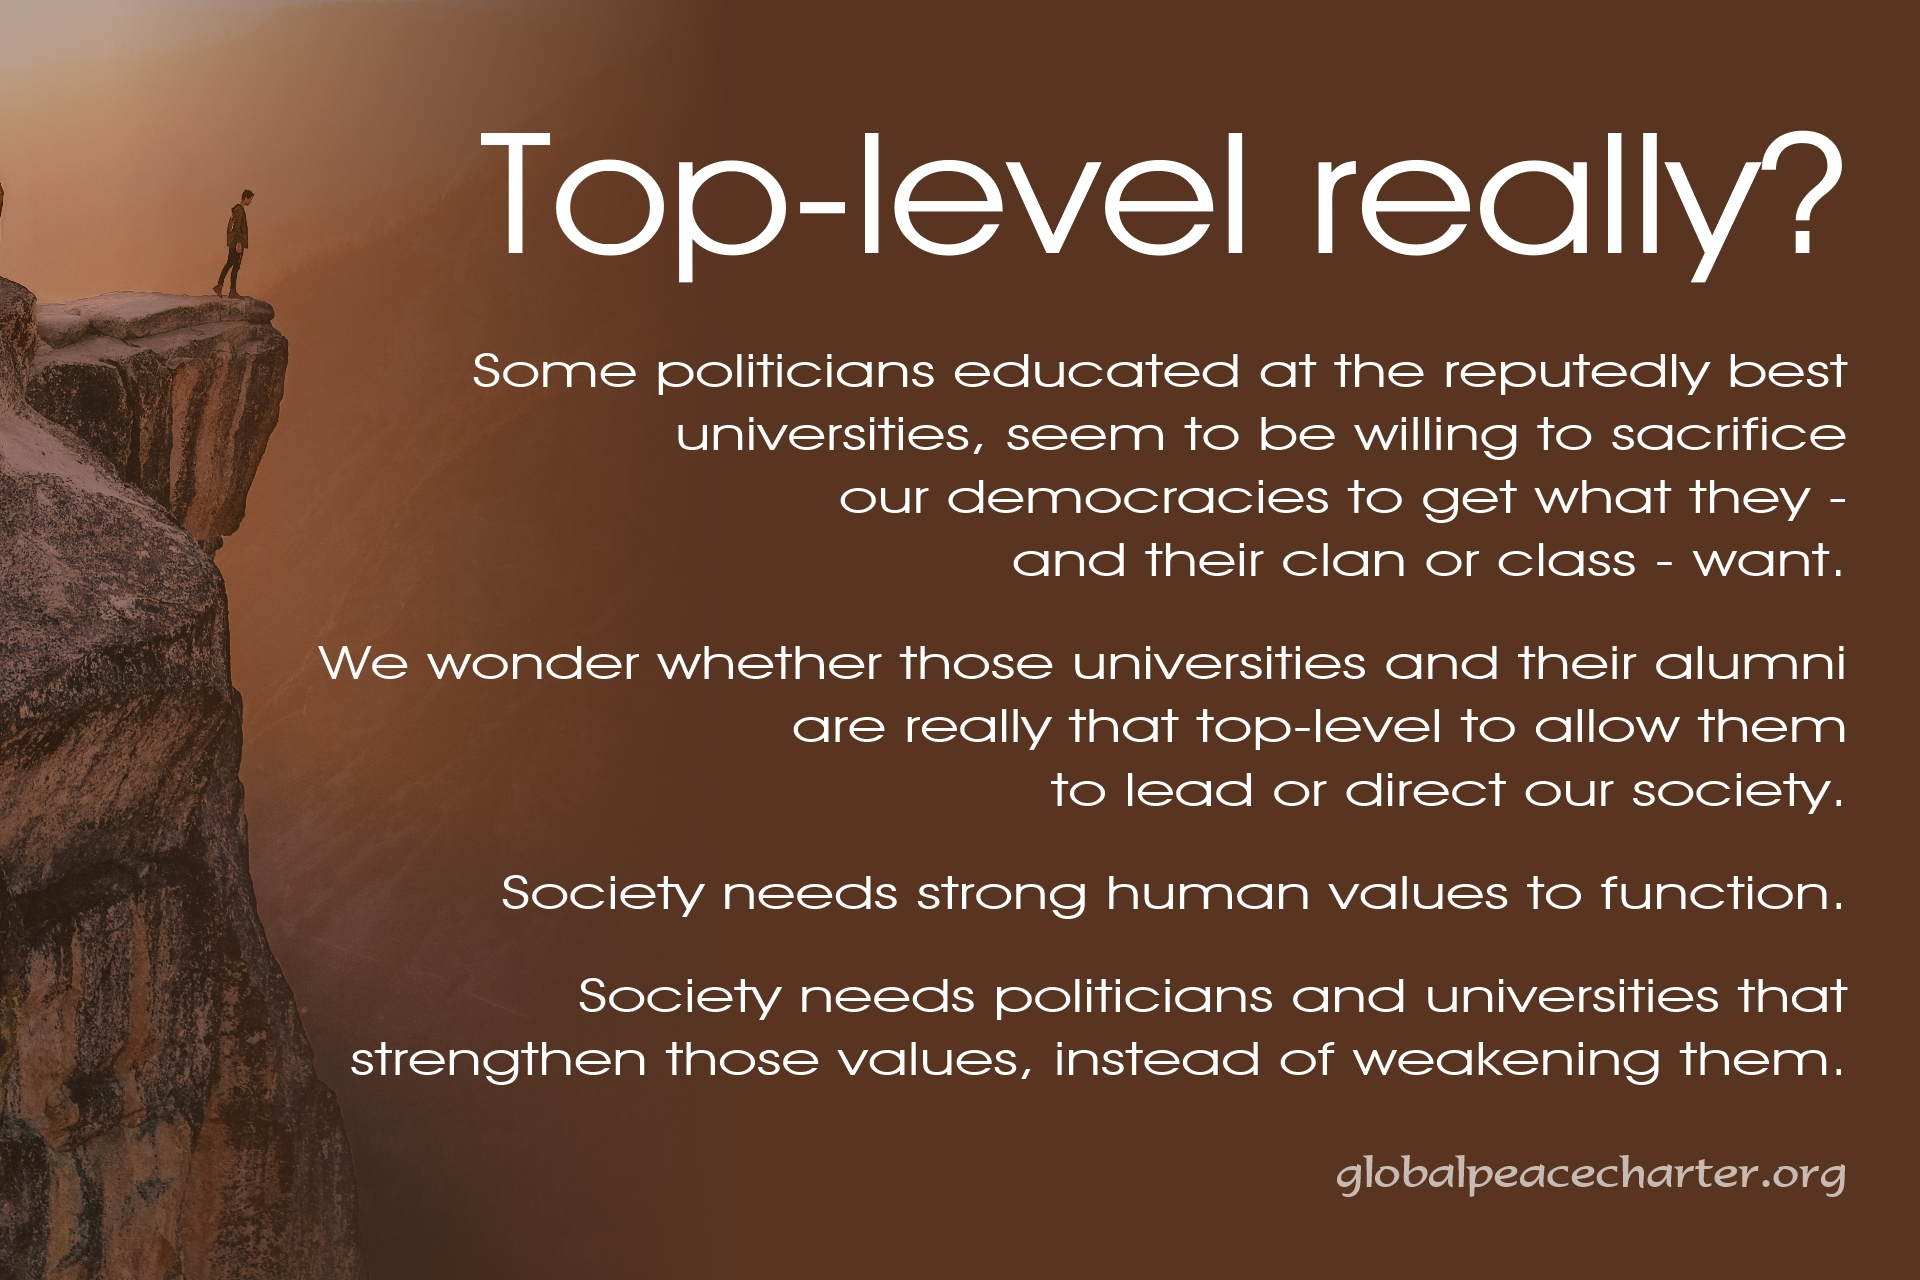 Top-level really?